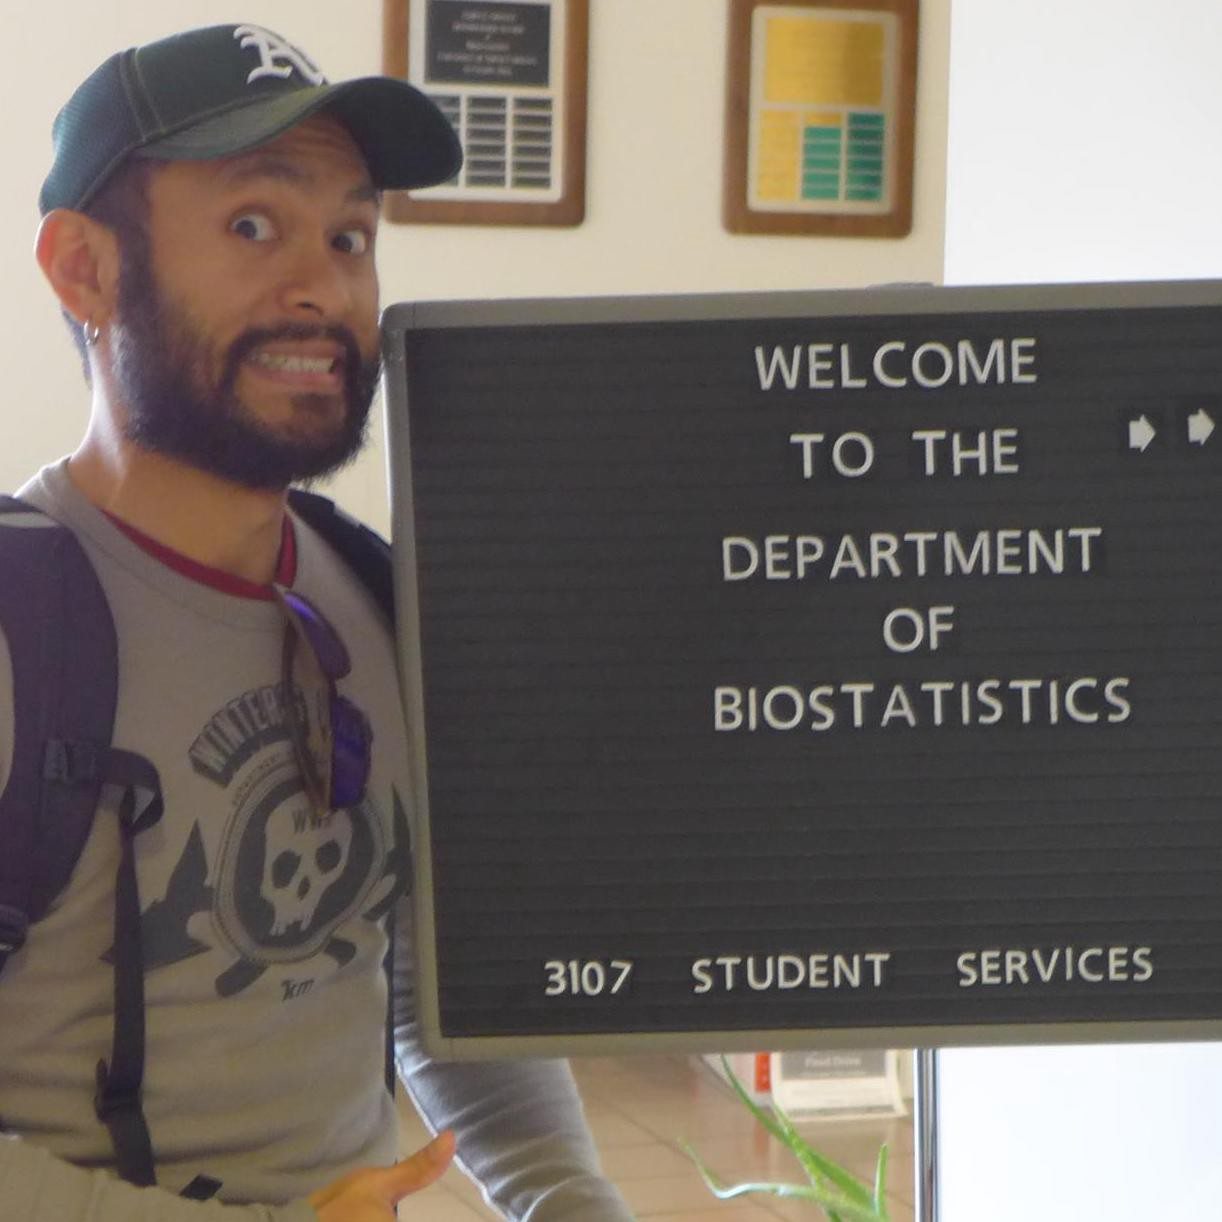 Eric J. Daza at the University of North Carolina Department of Biostatistics circa 2014.